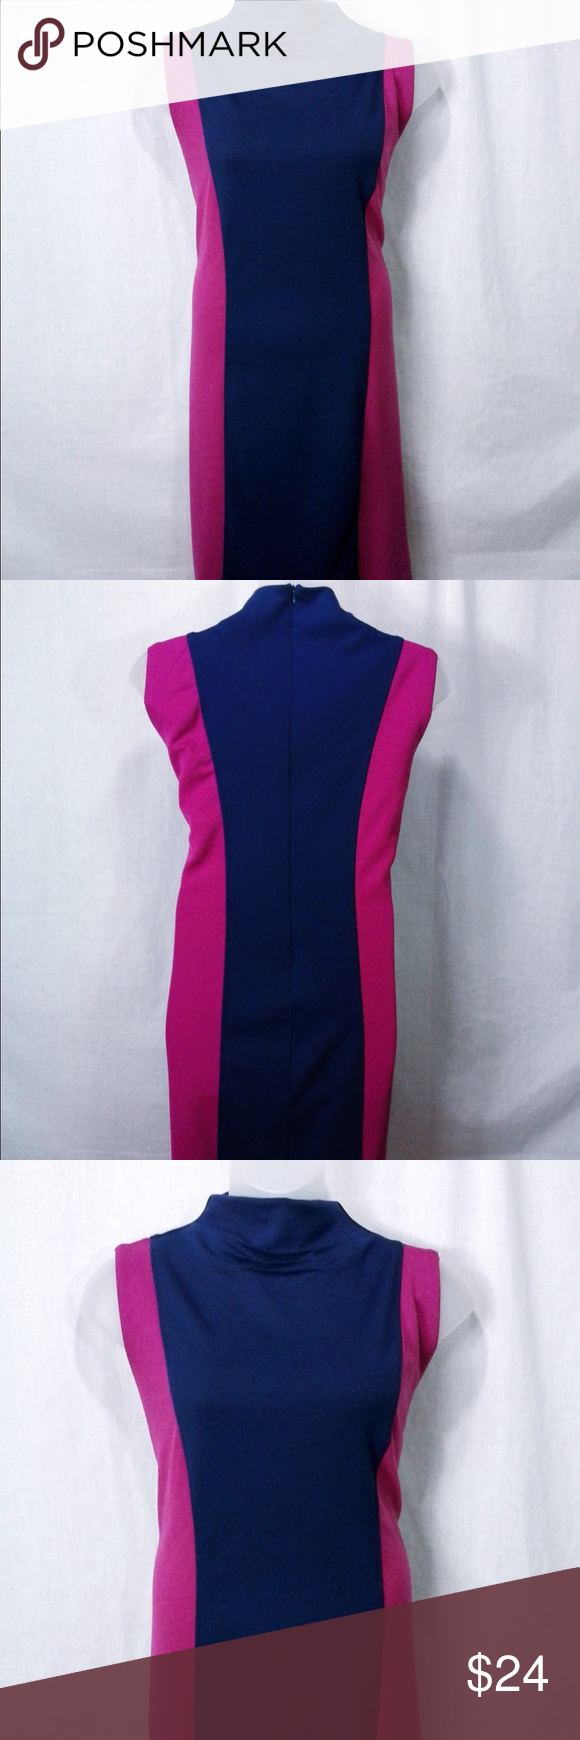 Ashley Stewart Knit Sheath Dress Prepare for boardroom fierceness when you rock this hot number! The colorblocking is bold while the sleek silhouette on this plus size dress is a classic must. An effortlessly chic brand, Ashley Stewart provides women with modern and runway style apparel for all occasions.  Ponte knit fabric - has stretch High gathered neck Sleeveless Fuchsia side panels with contrasting royal blue middle panels for a flattering slimming silhouette Size 22 Hits right at the…